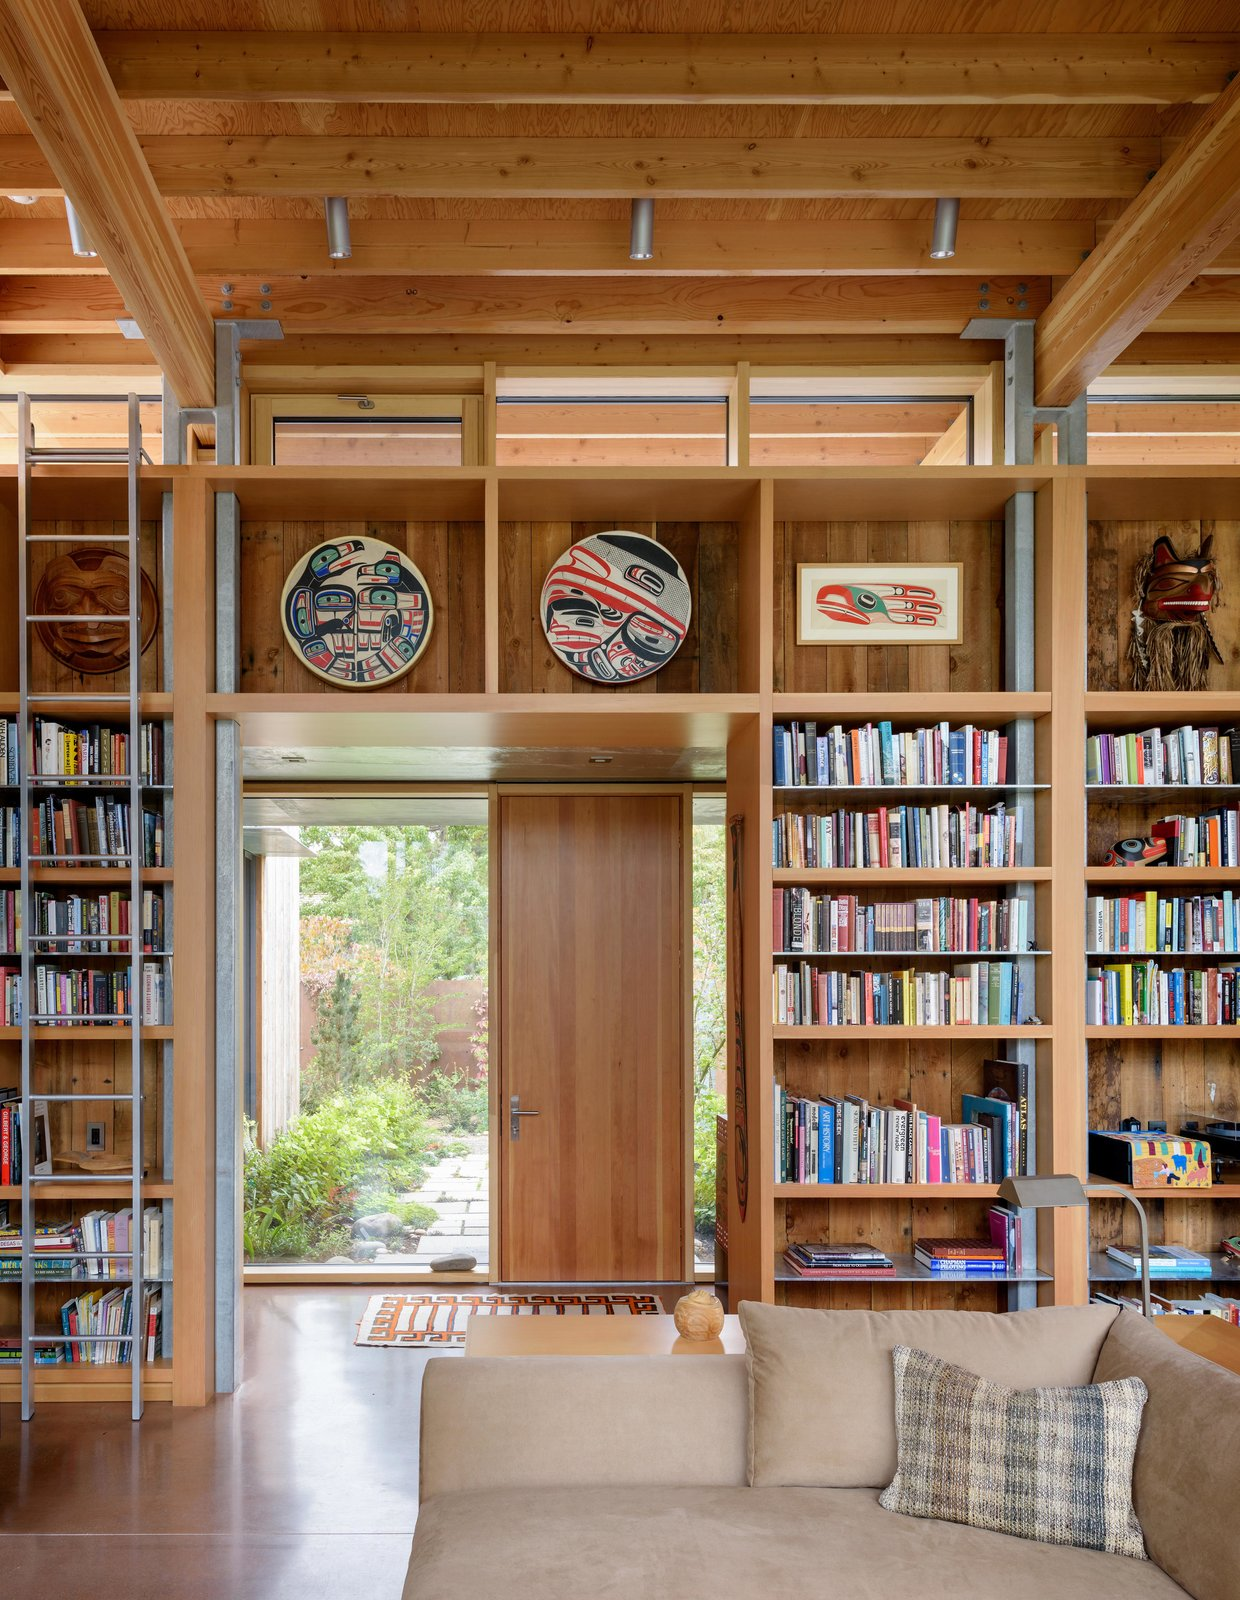 Hallway and Concrete Floor City Cabin | Olson Kundig  Photo 8 of 13 in Immersed in Nature, This City Cabin Targets Net-Zero Energy from City Cabin